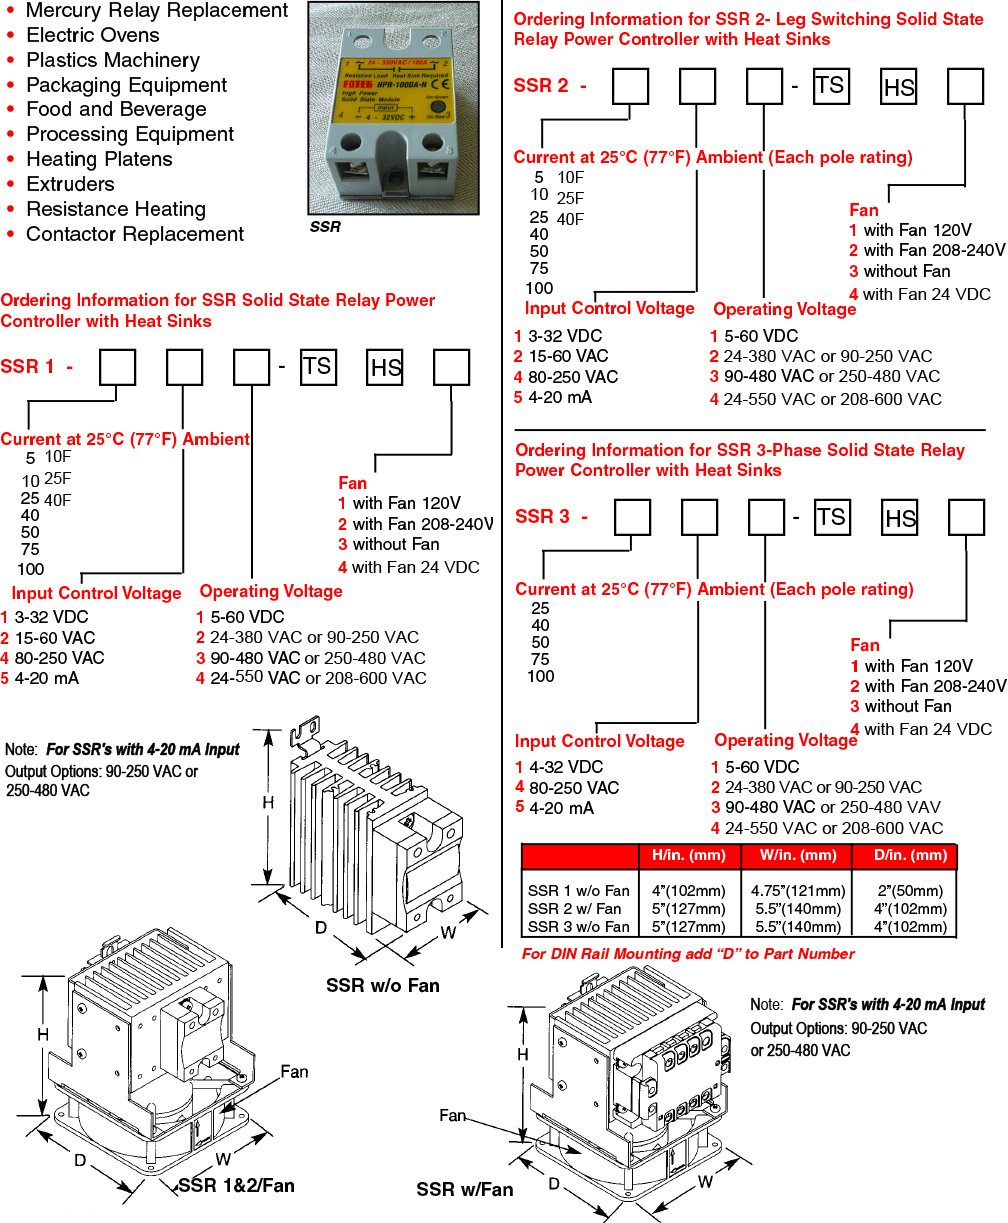 Solid State Relays (SSR) 2